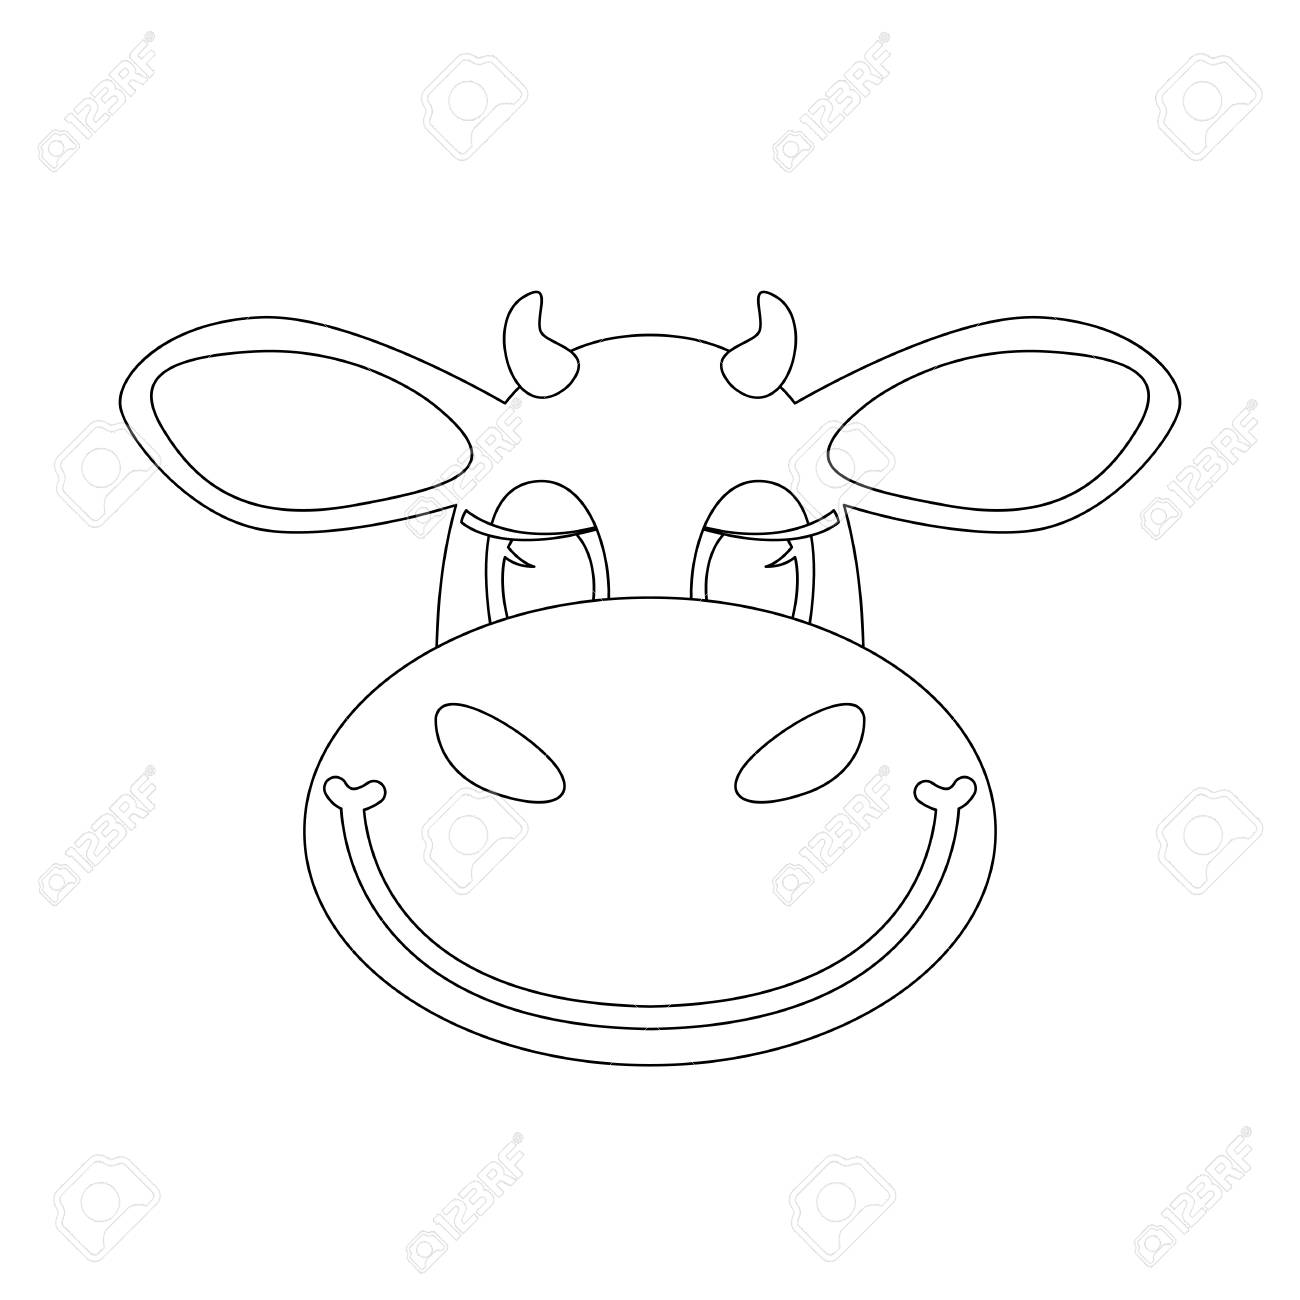 Cartoon Cow Face Lining Draw Front View Vector Illustration